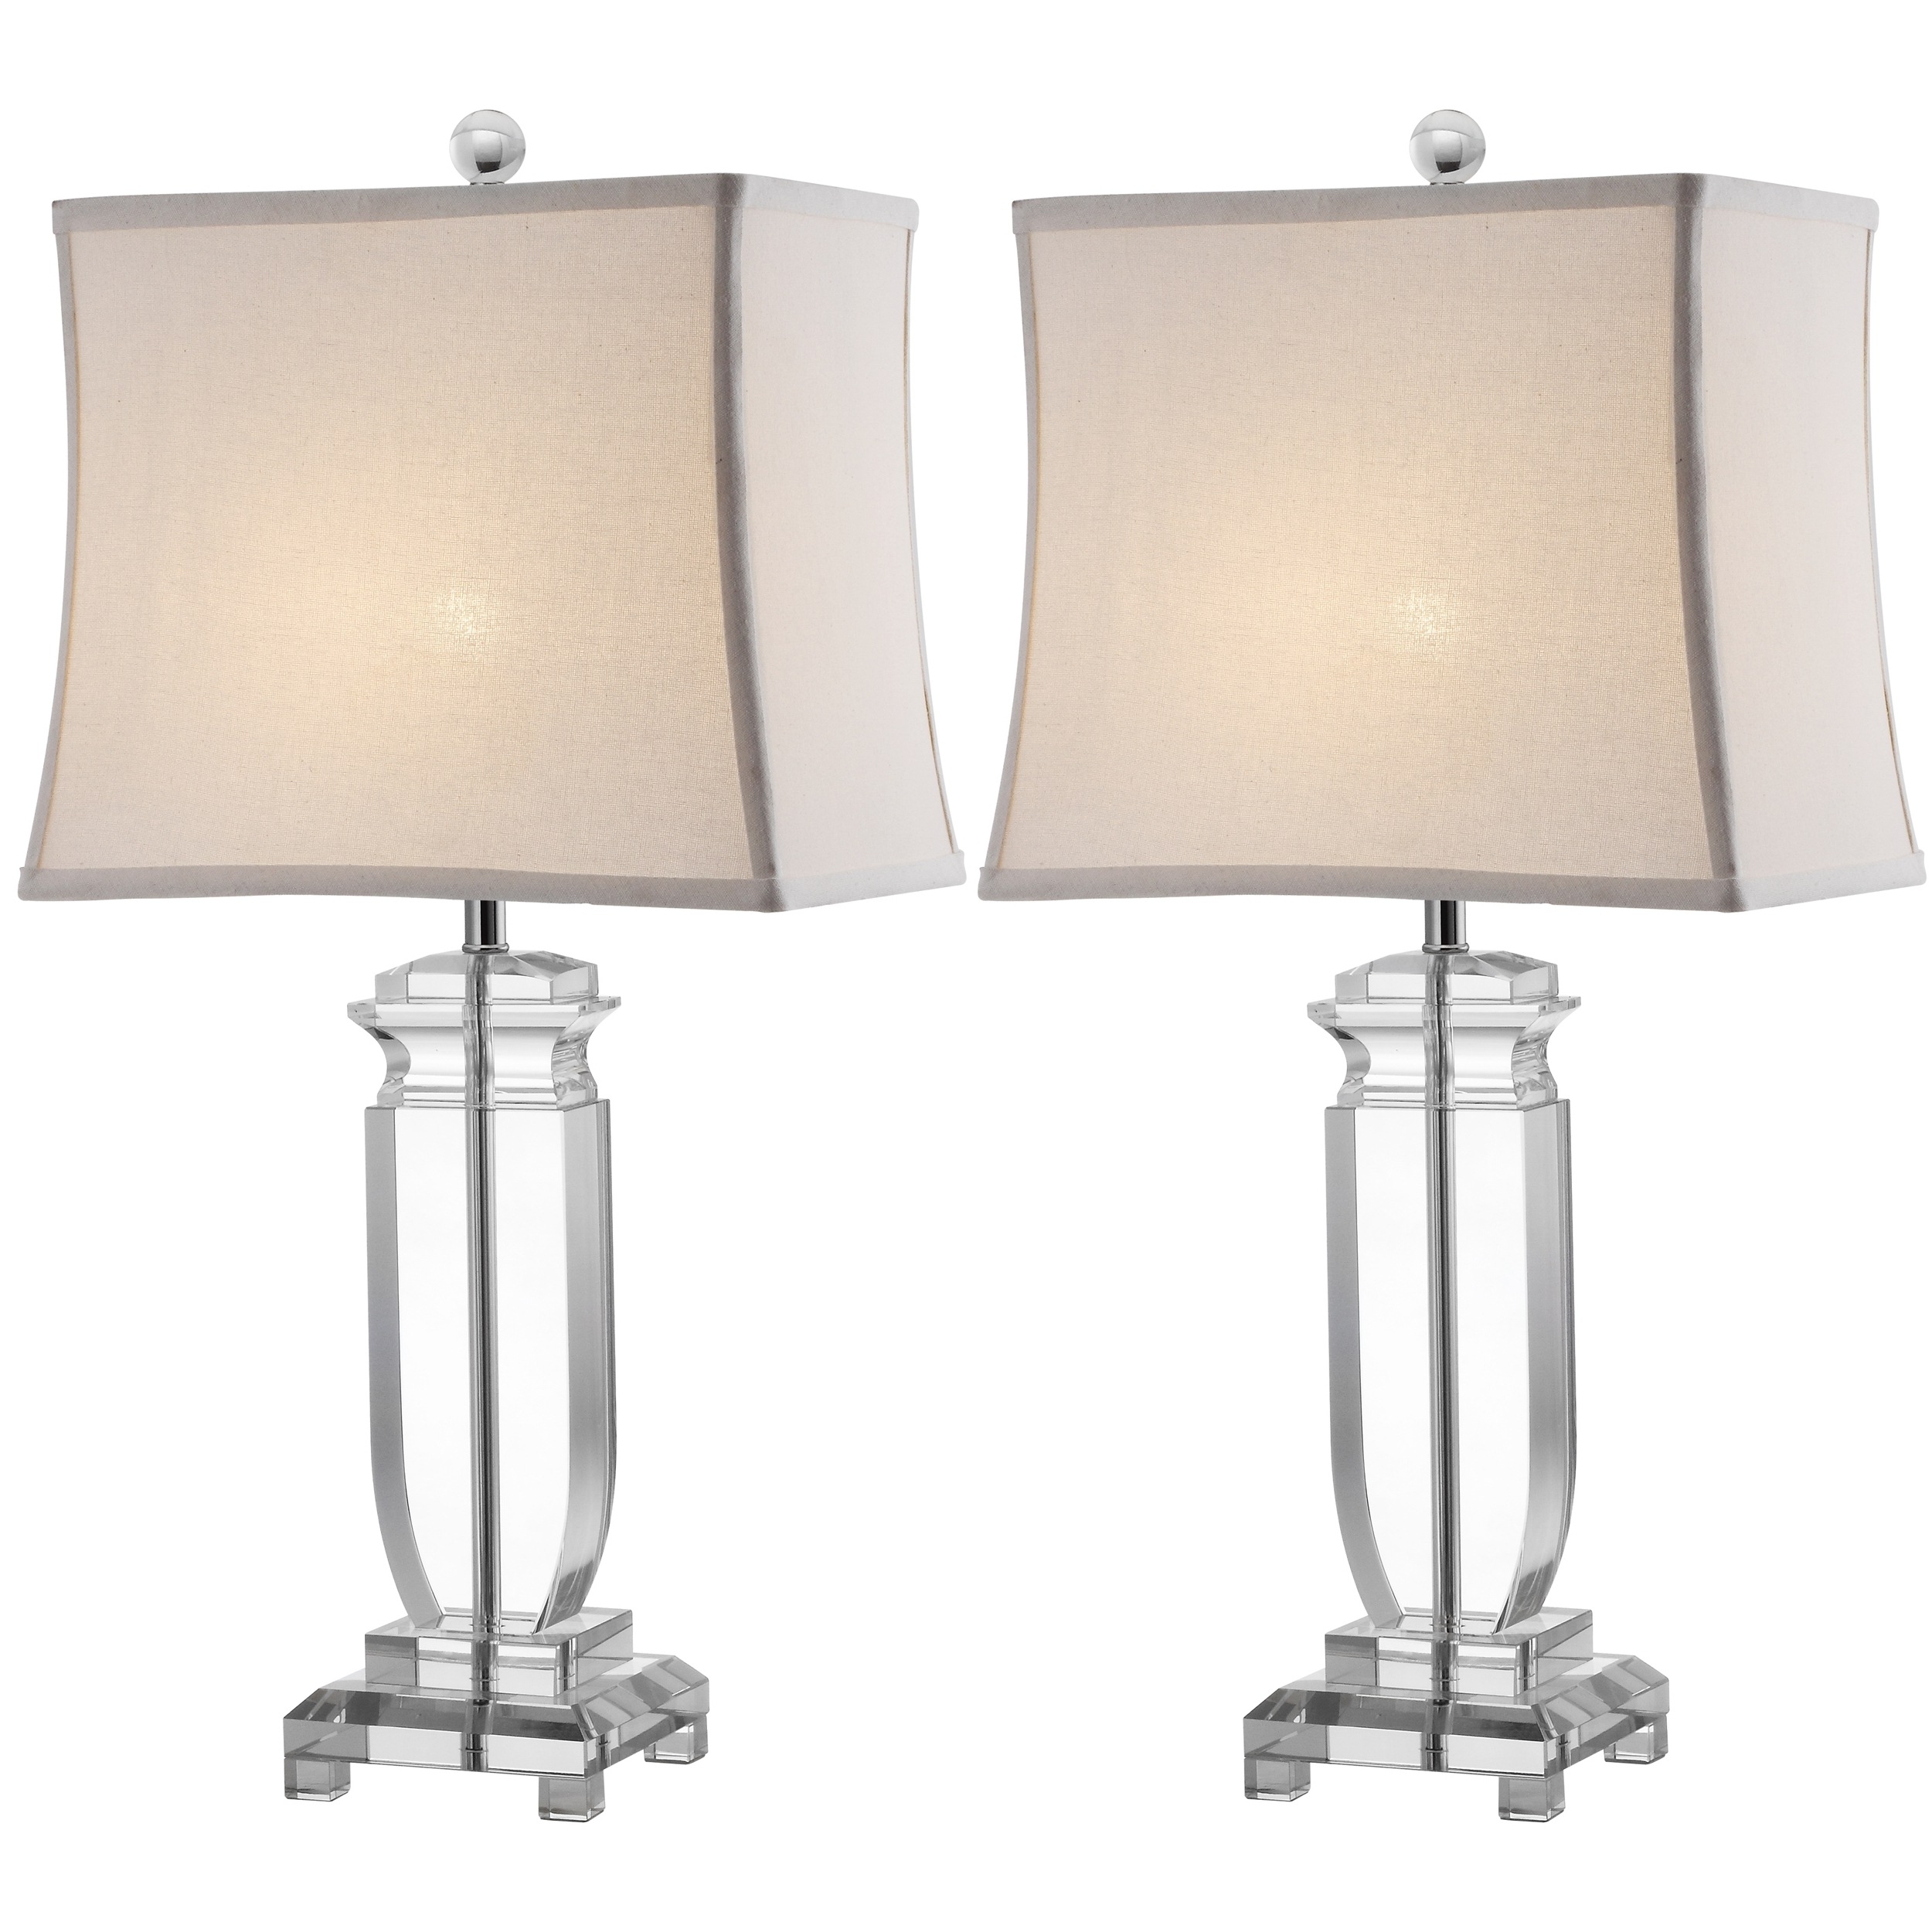 Well-liked Silver Table Lamps For Living Room in 68 Most Tremendous Silver Bedside Lamps Led Table Lamp Grey Retro